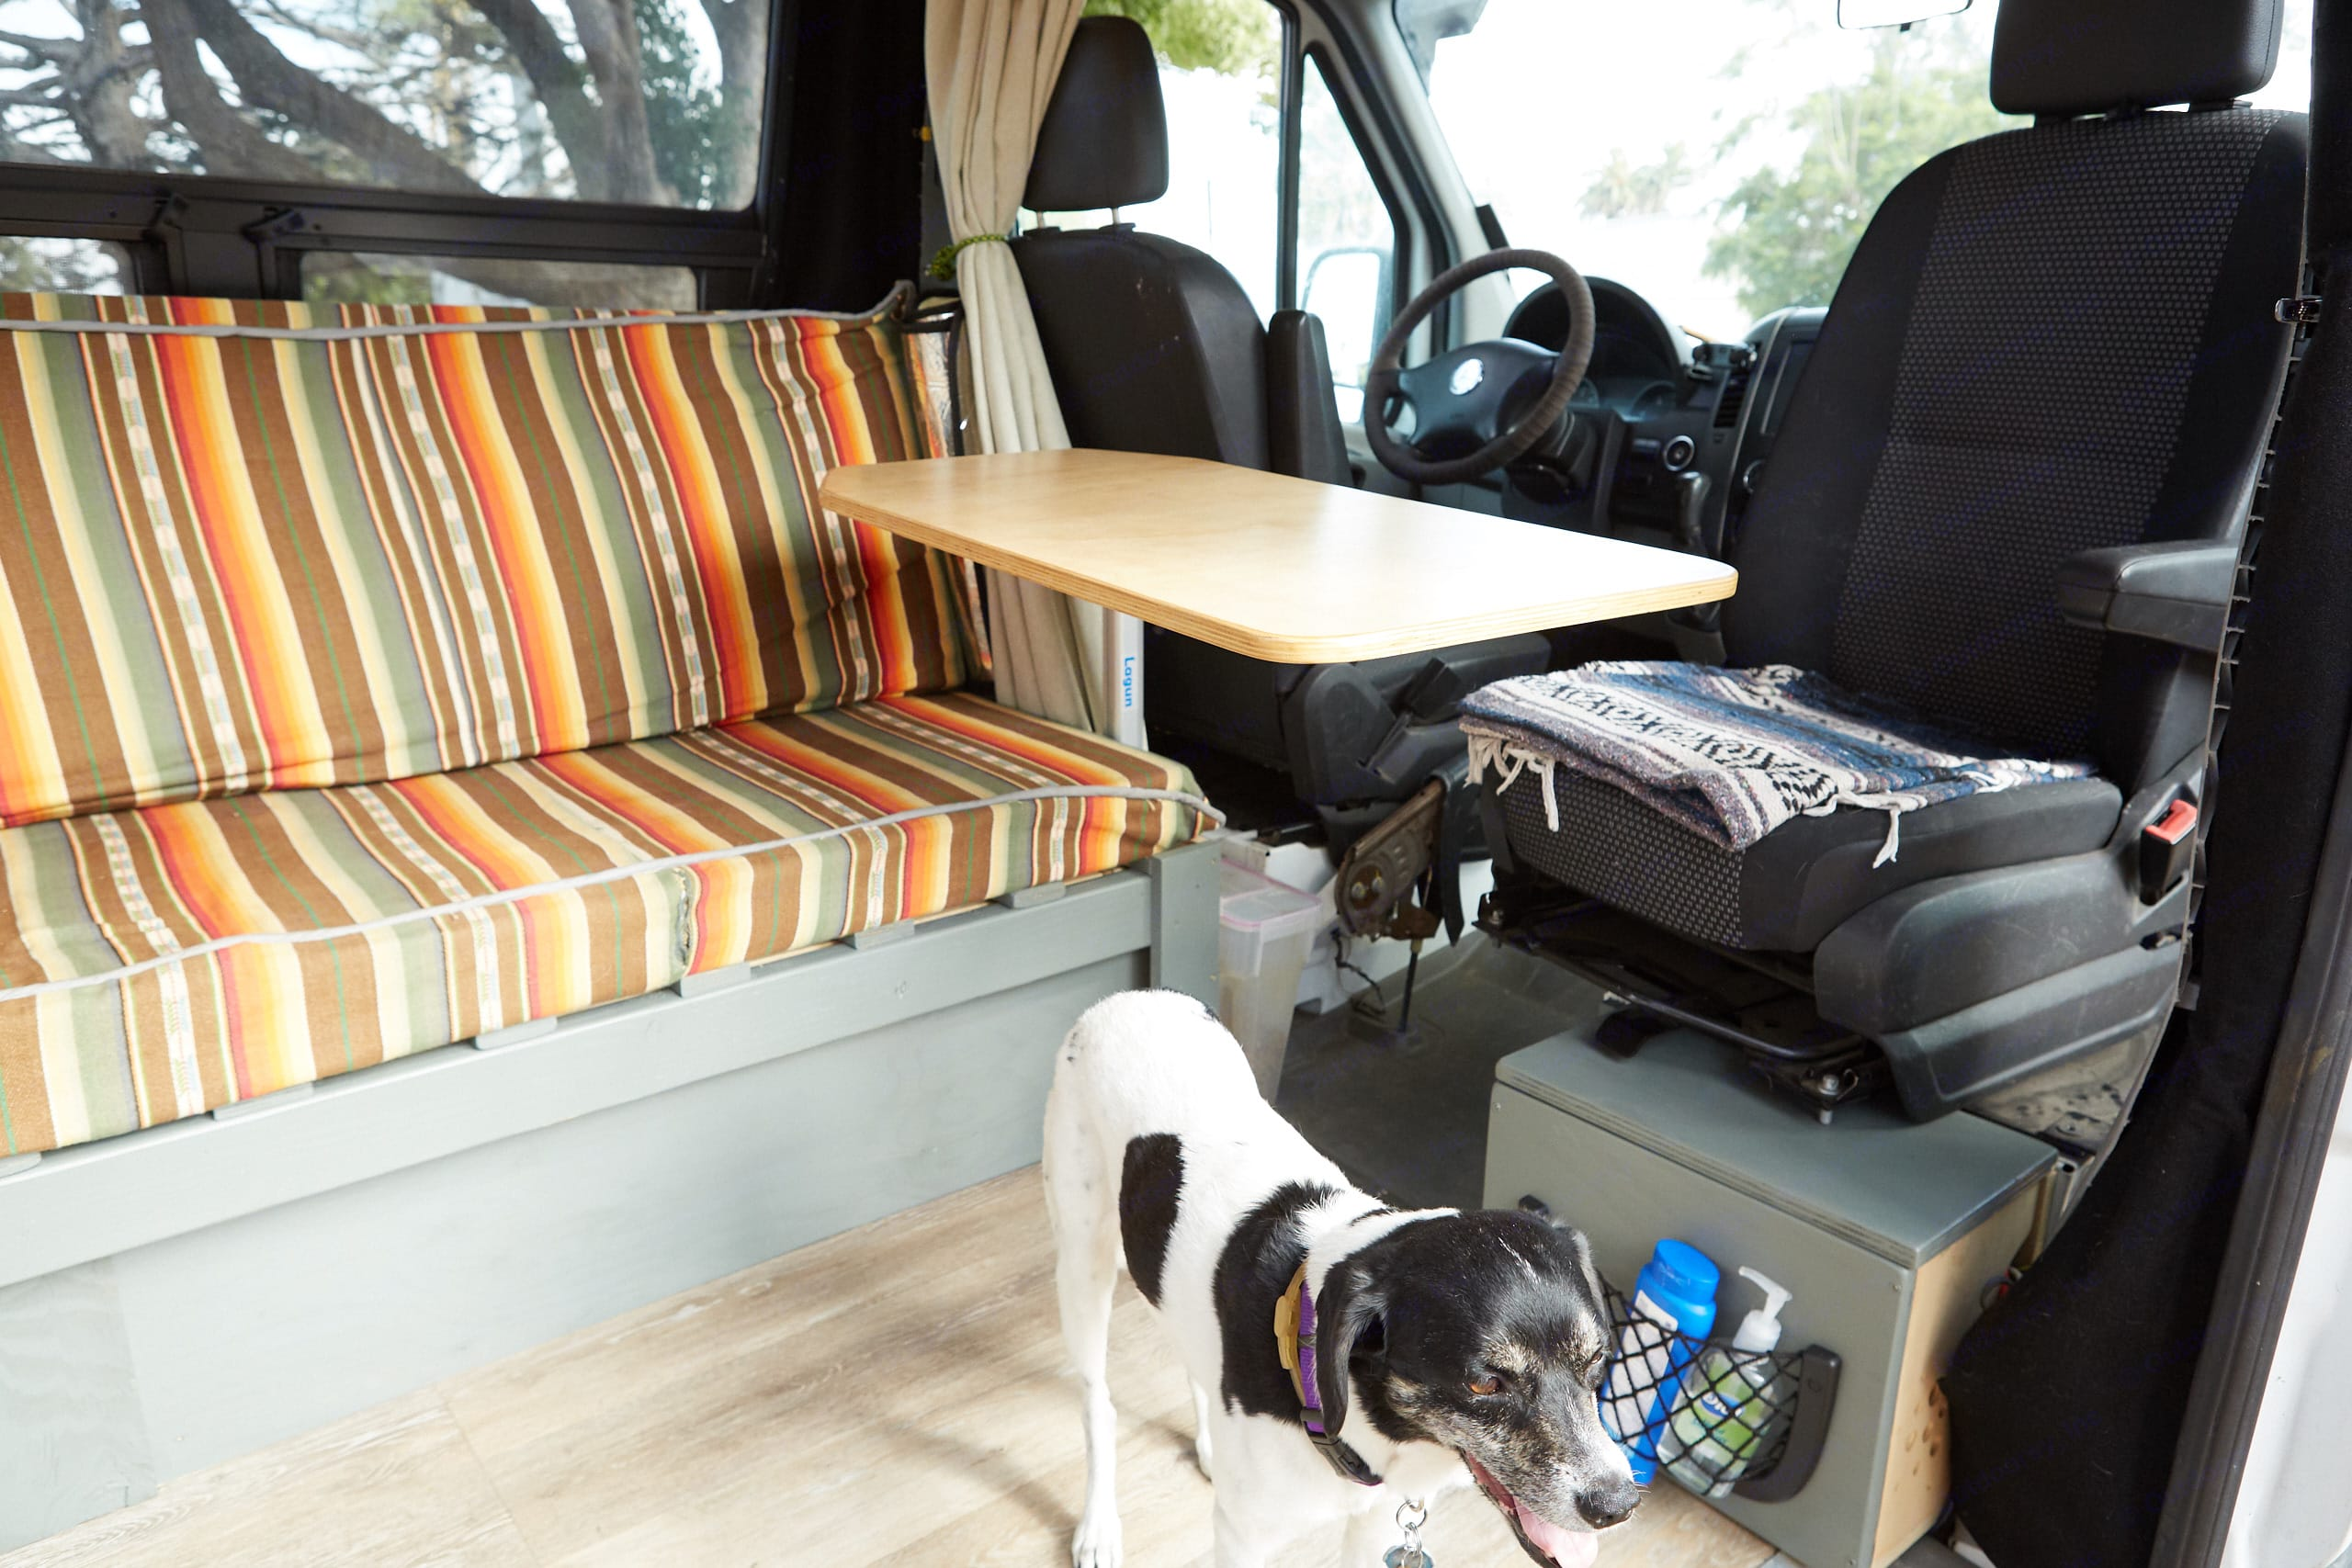 Swivel seat meets swivel table, seats 4 for dinner or games inside. Mercedes-Benz Sprinter 2007